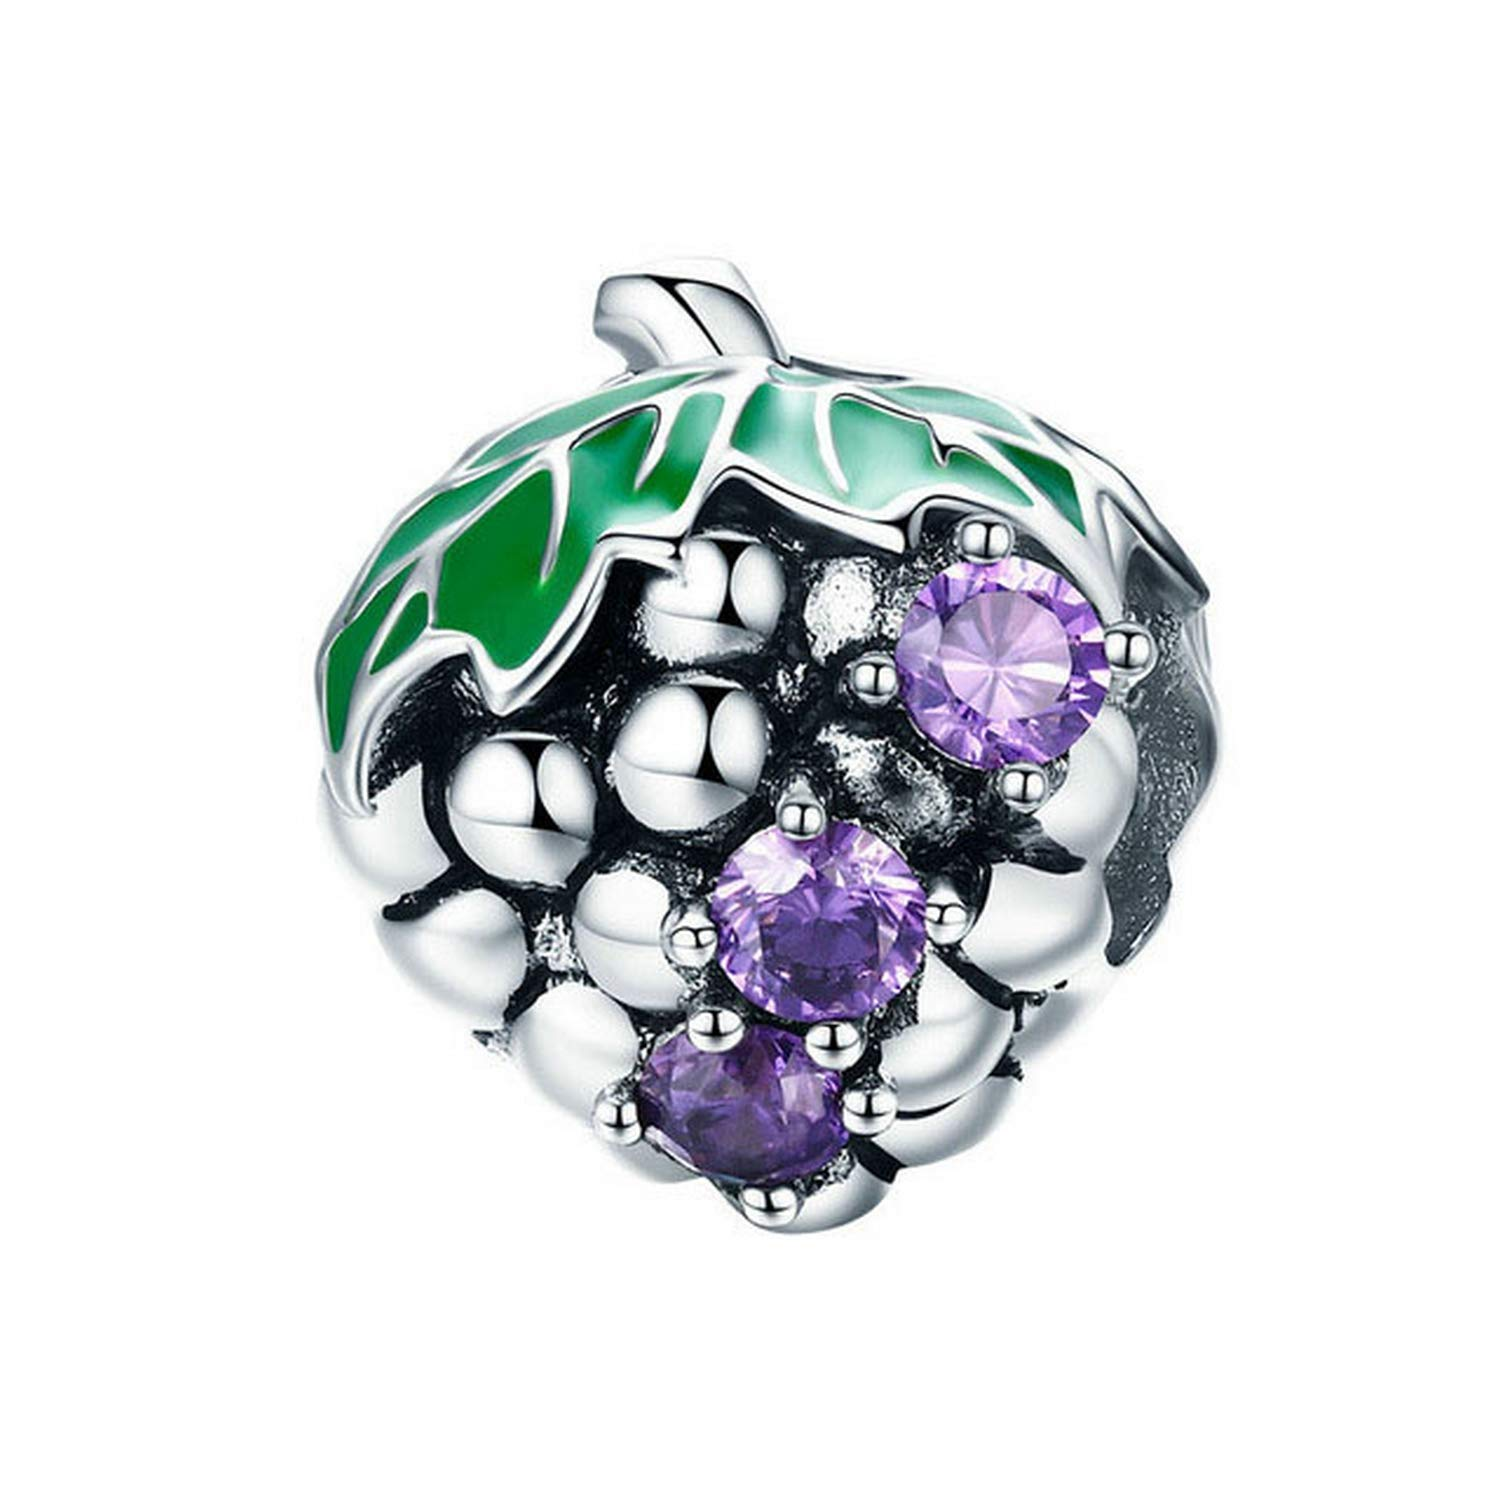 Evereena Silver Beads Bracelet for Girls Fashion Purple Grape Fruit Charm Womens Jewelry